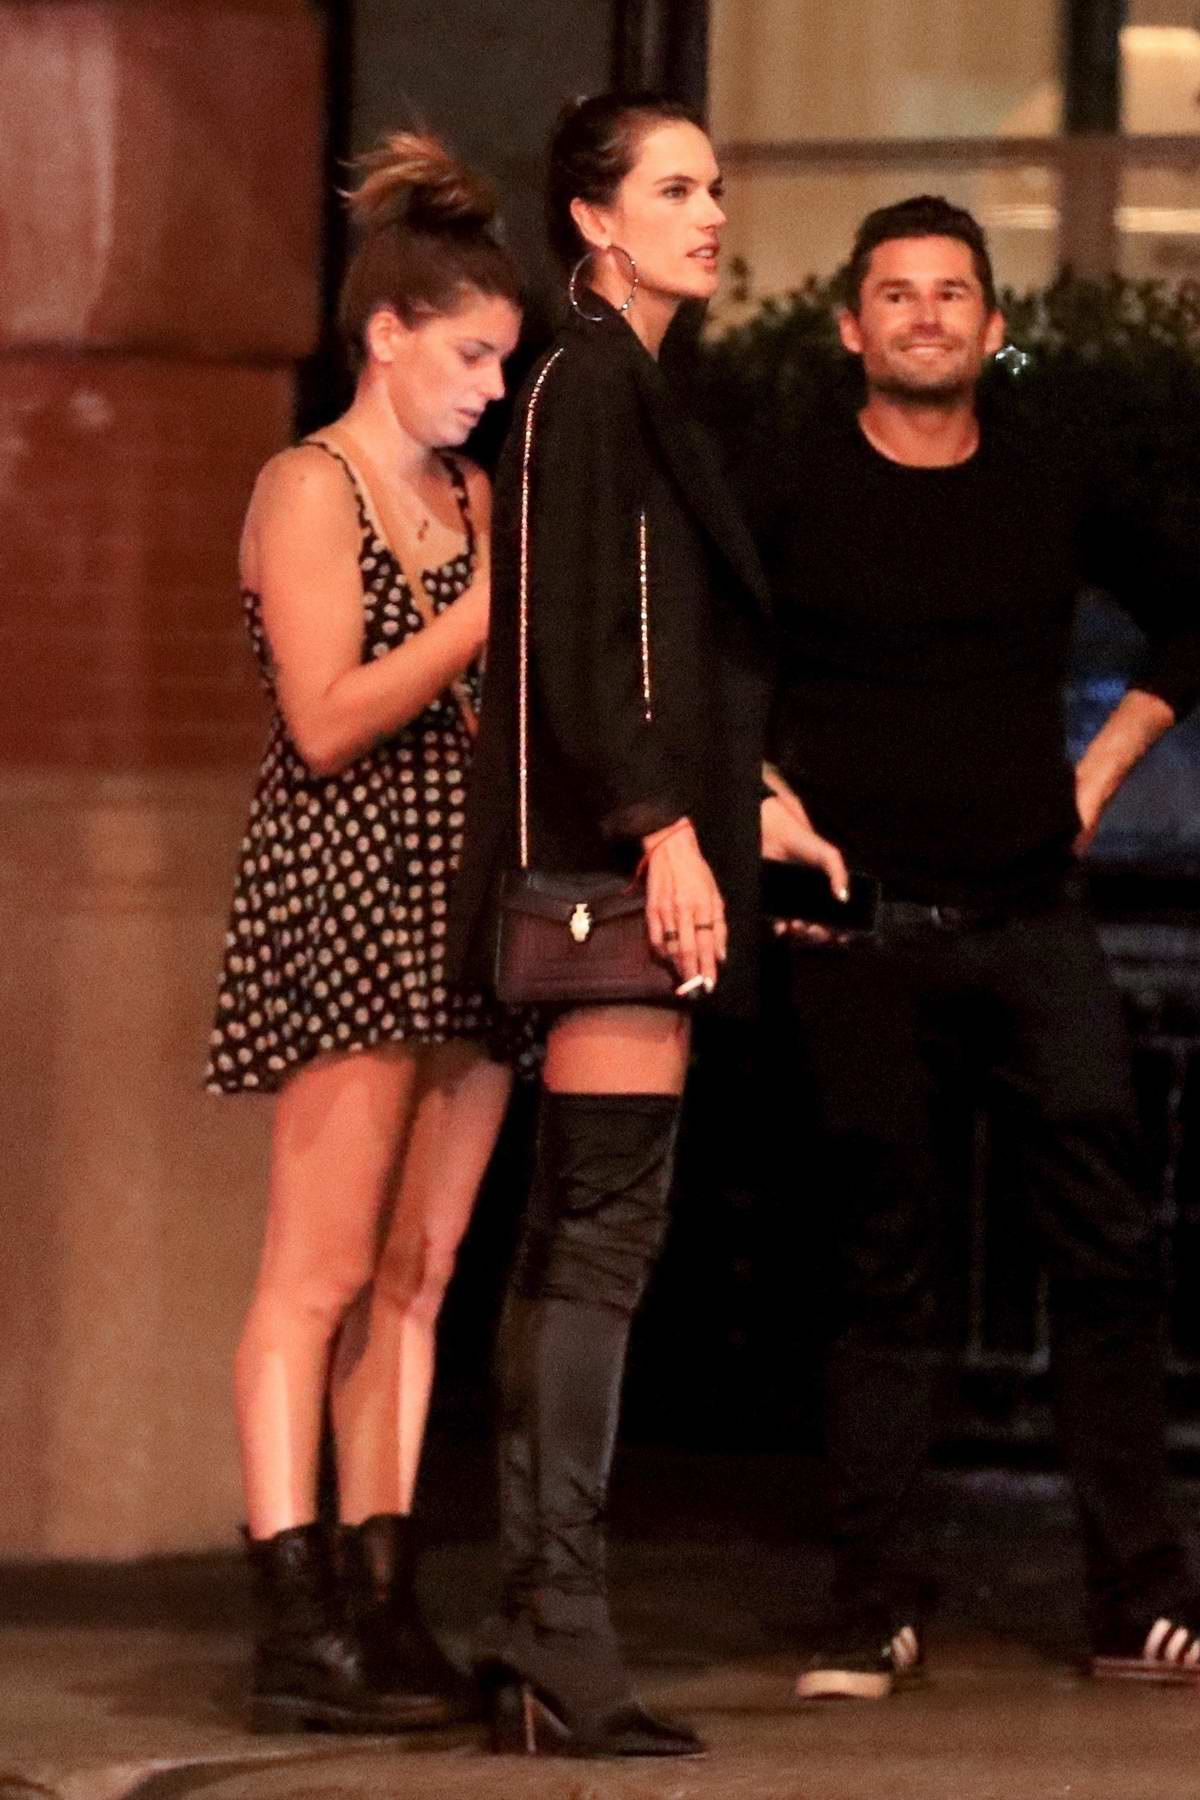 Alessandra Ambrosio and boyfriend Nicolo Oddi spotted during a night out in New York City